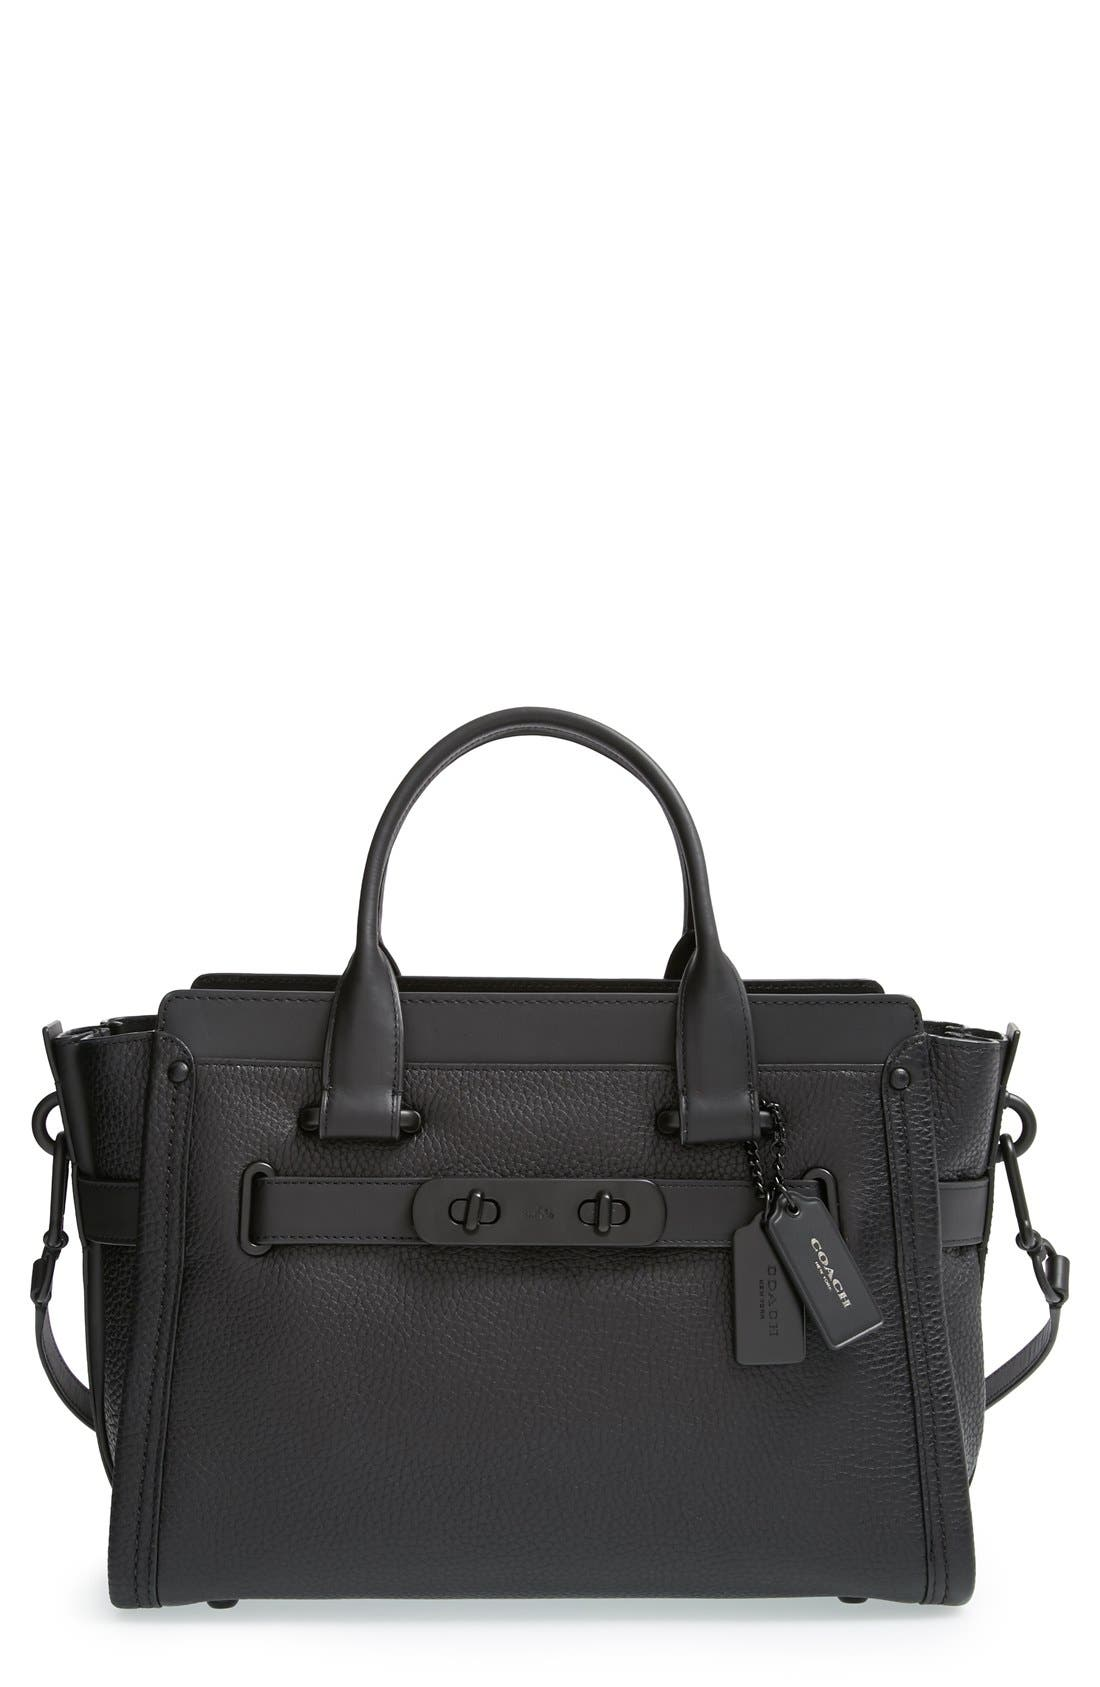 COACH 'Swagger' Pebble Leather Satchel, Main, color, 001